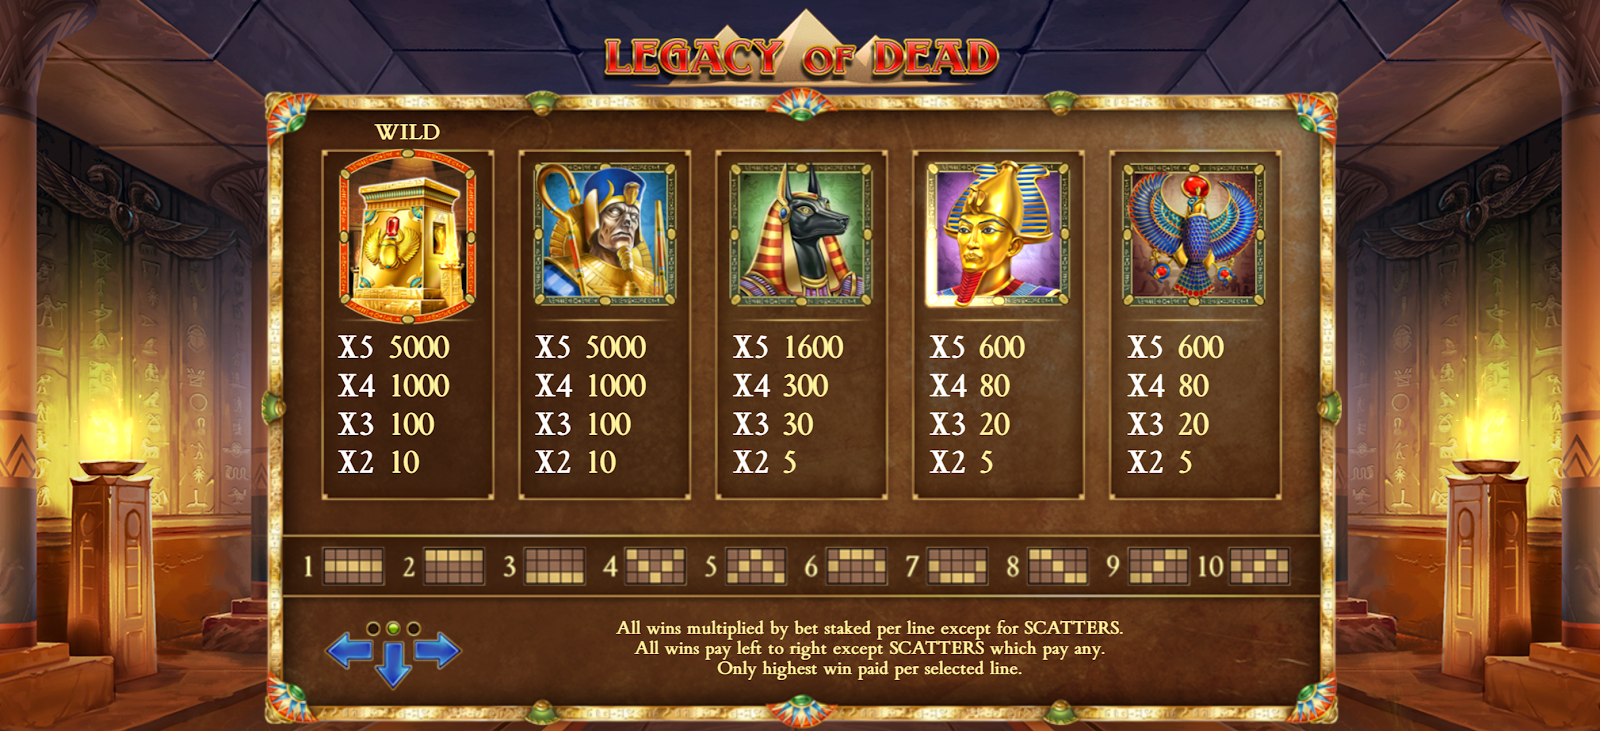 Legacy of Dead is one of the top-rated slots games